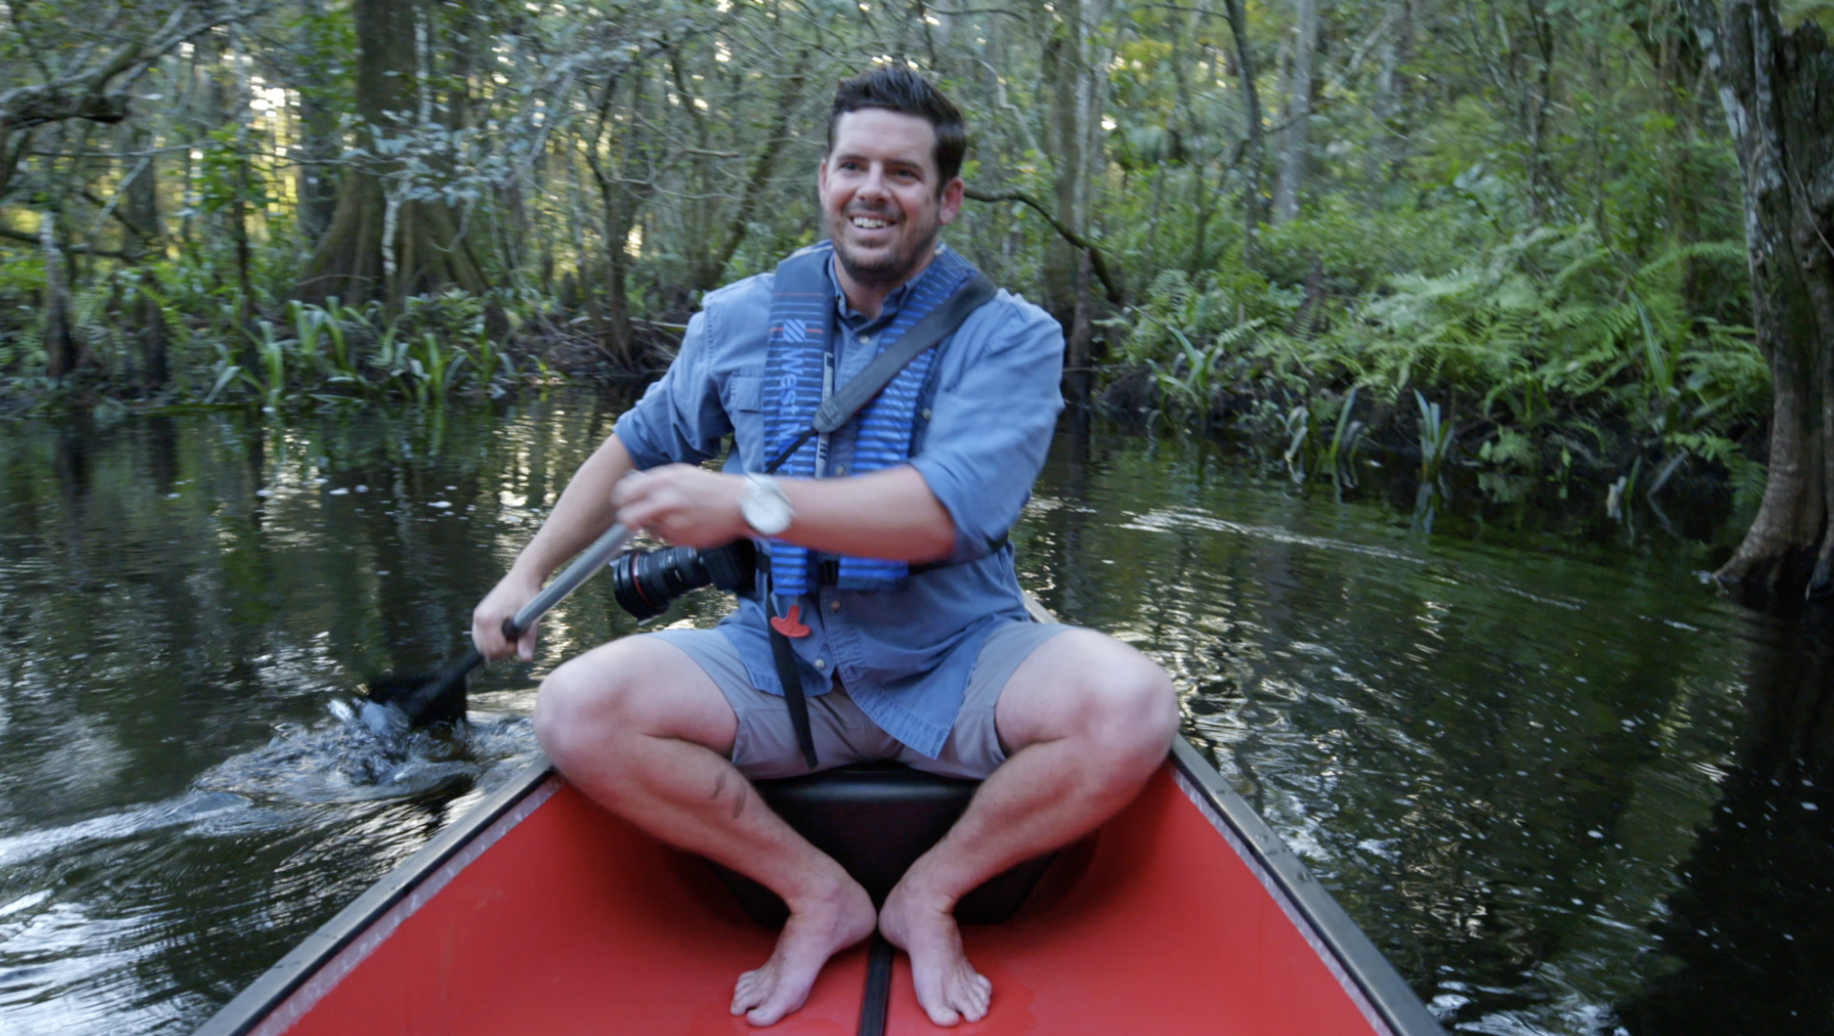 canoeing the loxahatchee